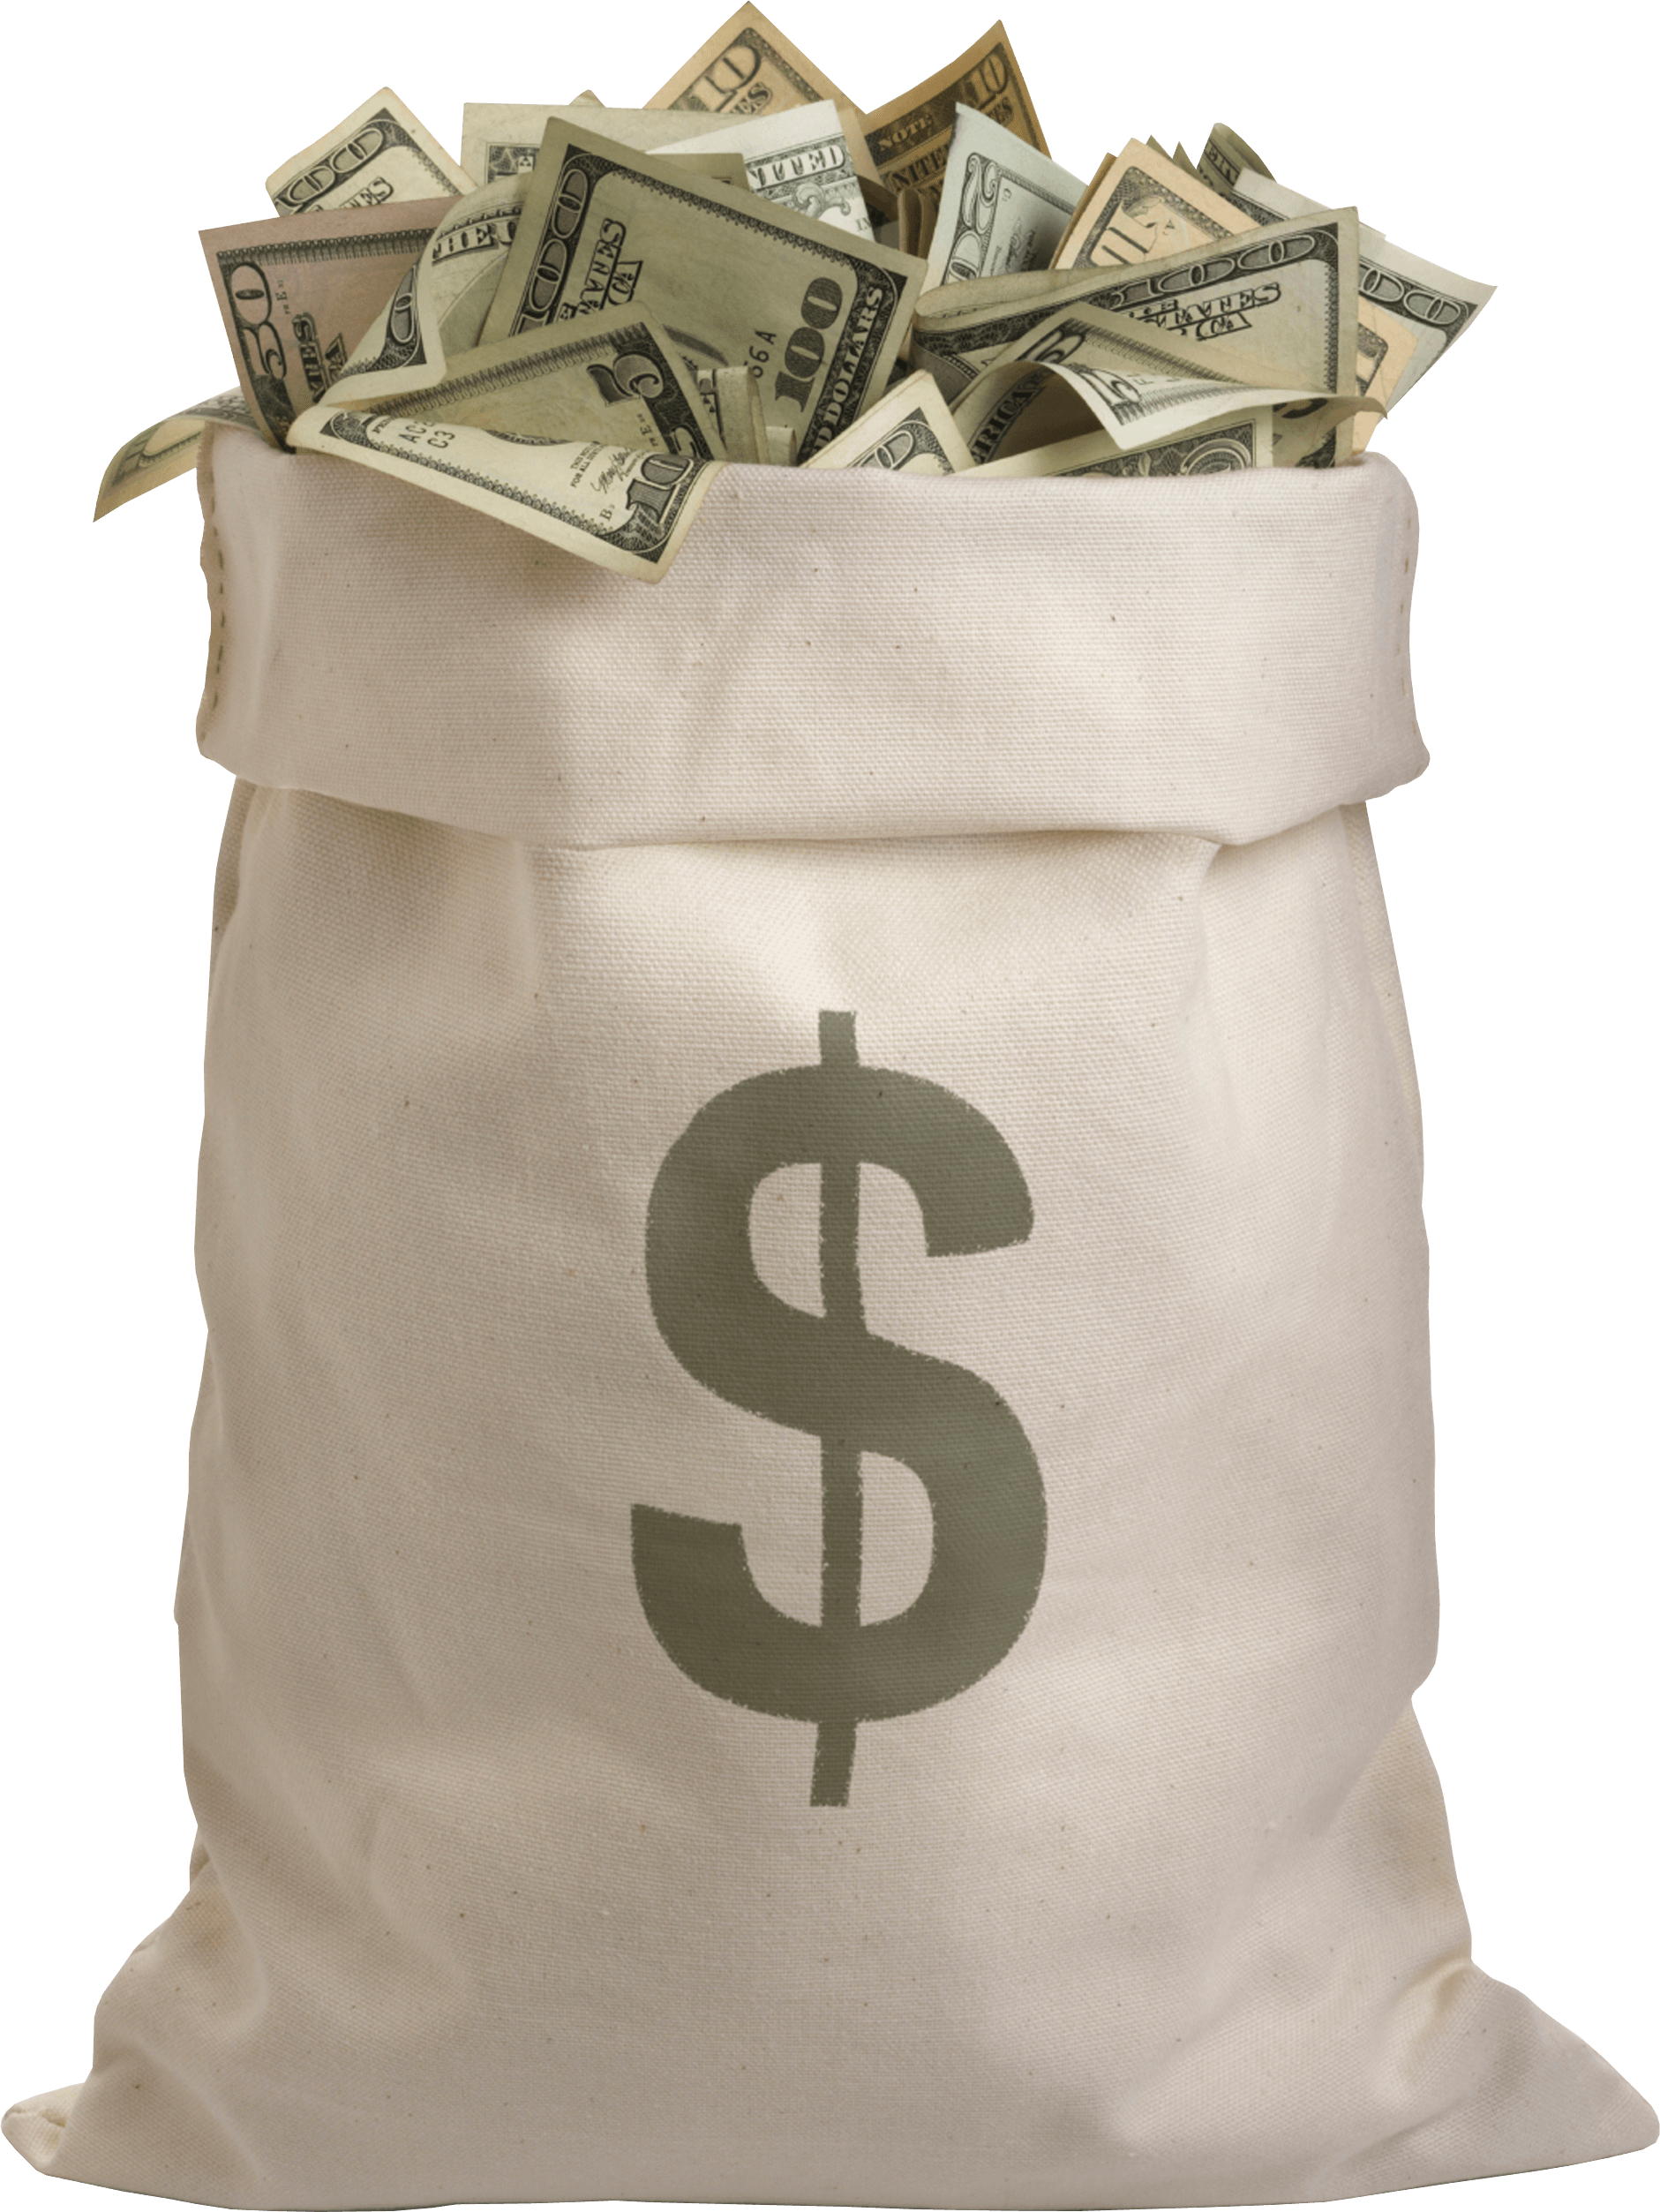 Money bag png. Transparent images stickpng full